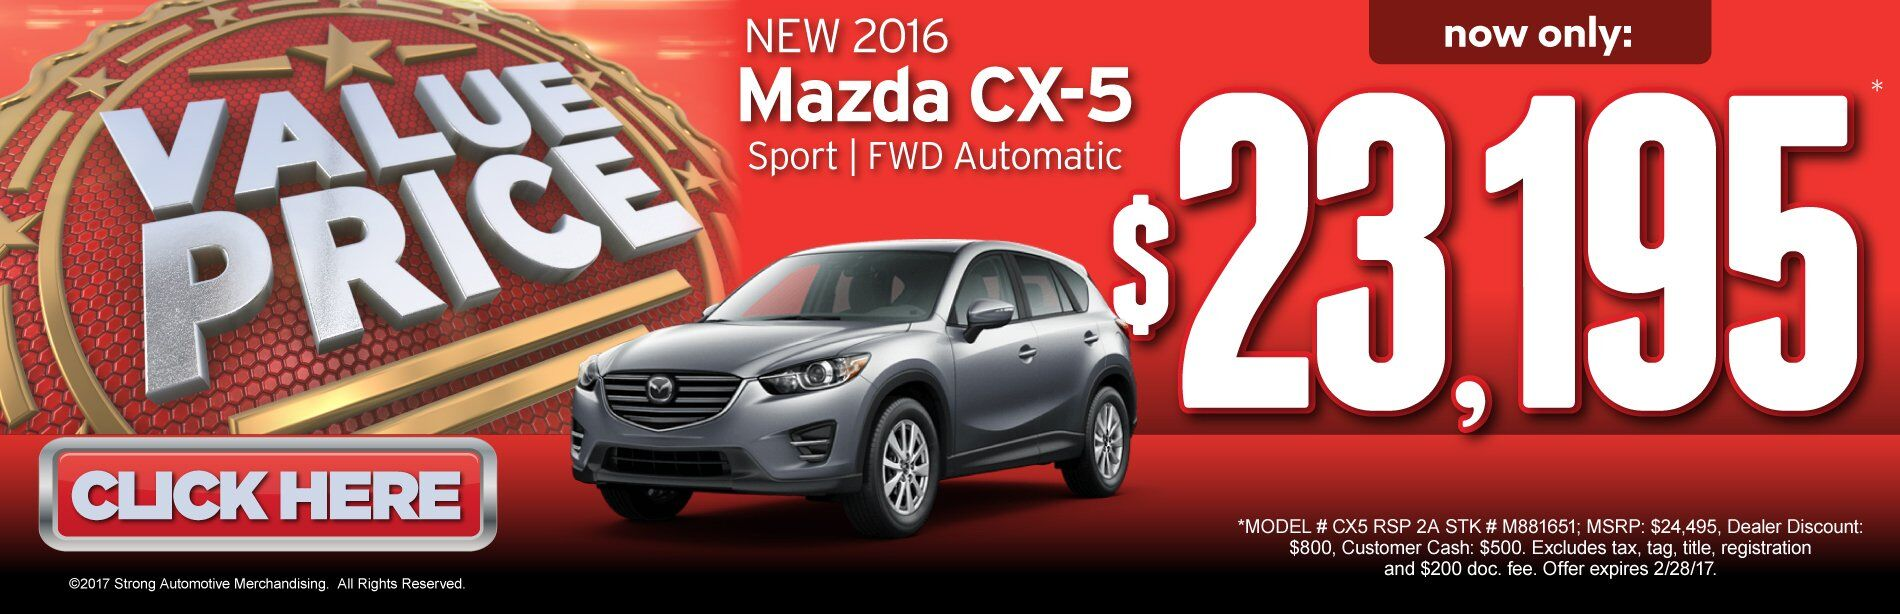 Value Price Mazda CX-5